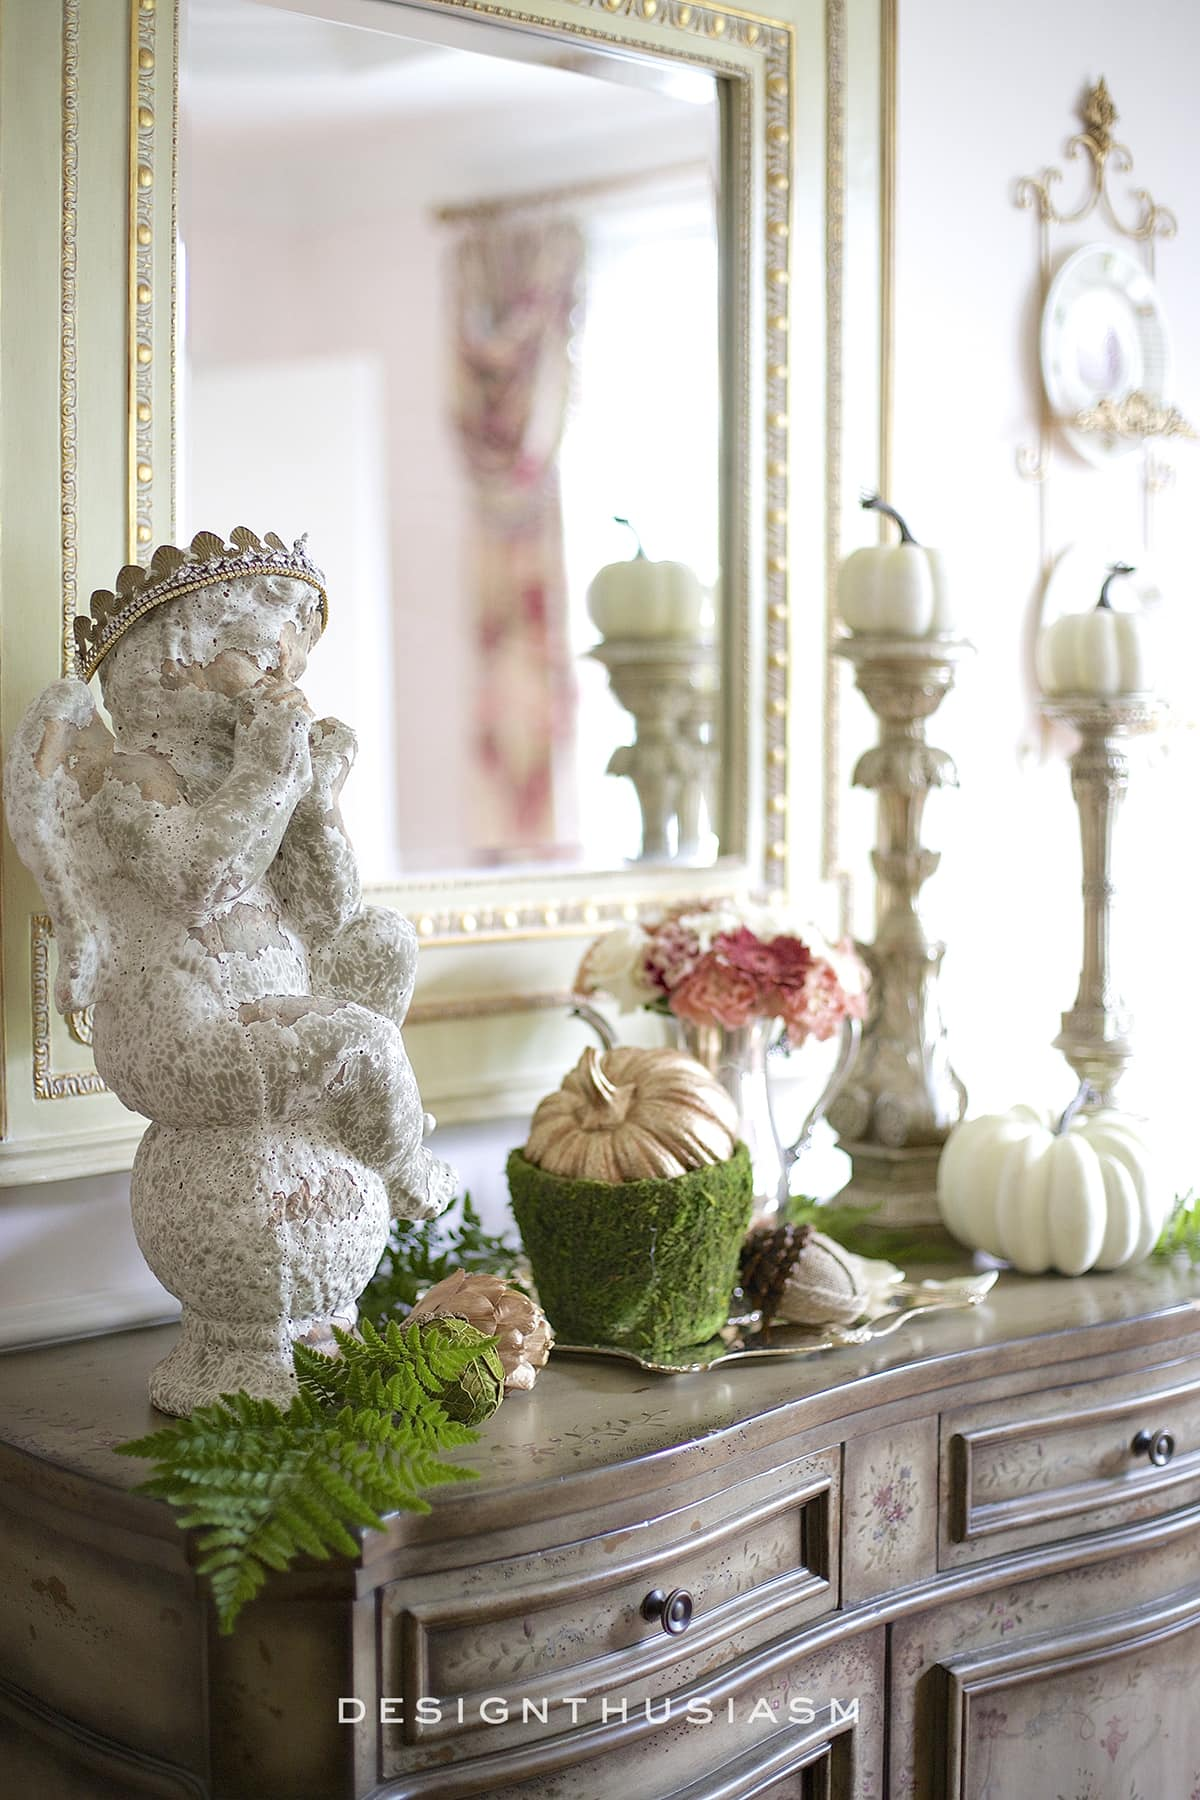 Fall Vignette in the Dining Room | Designthusiasm.com